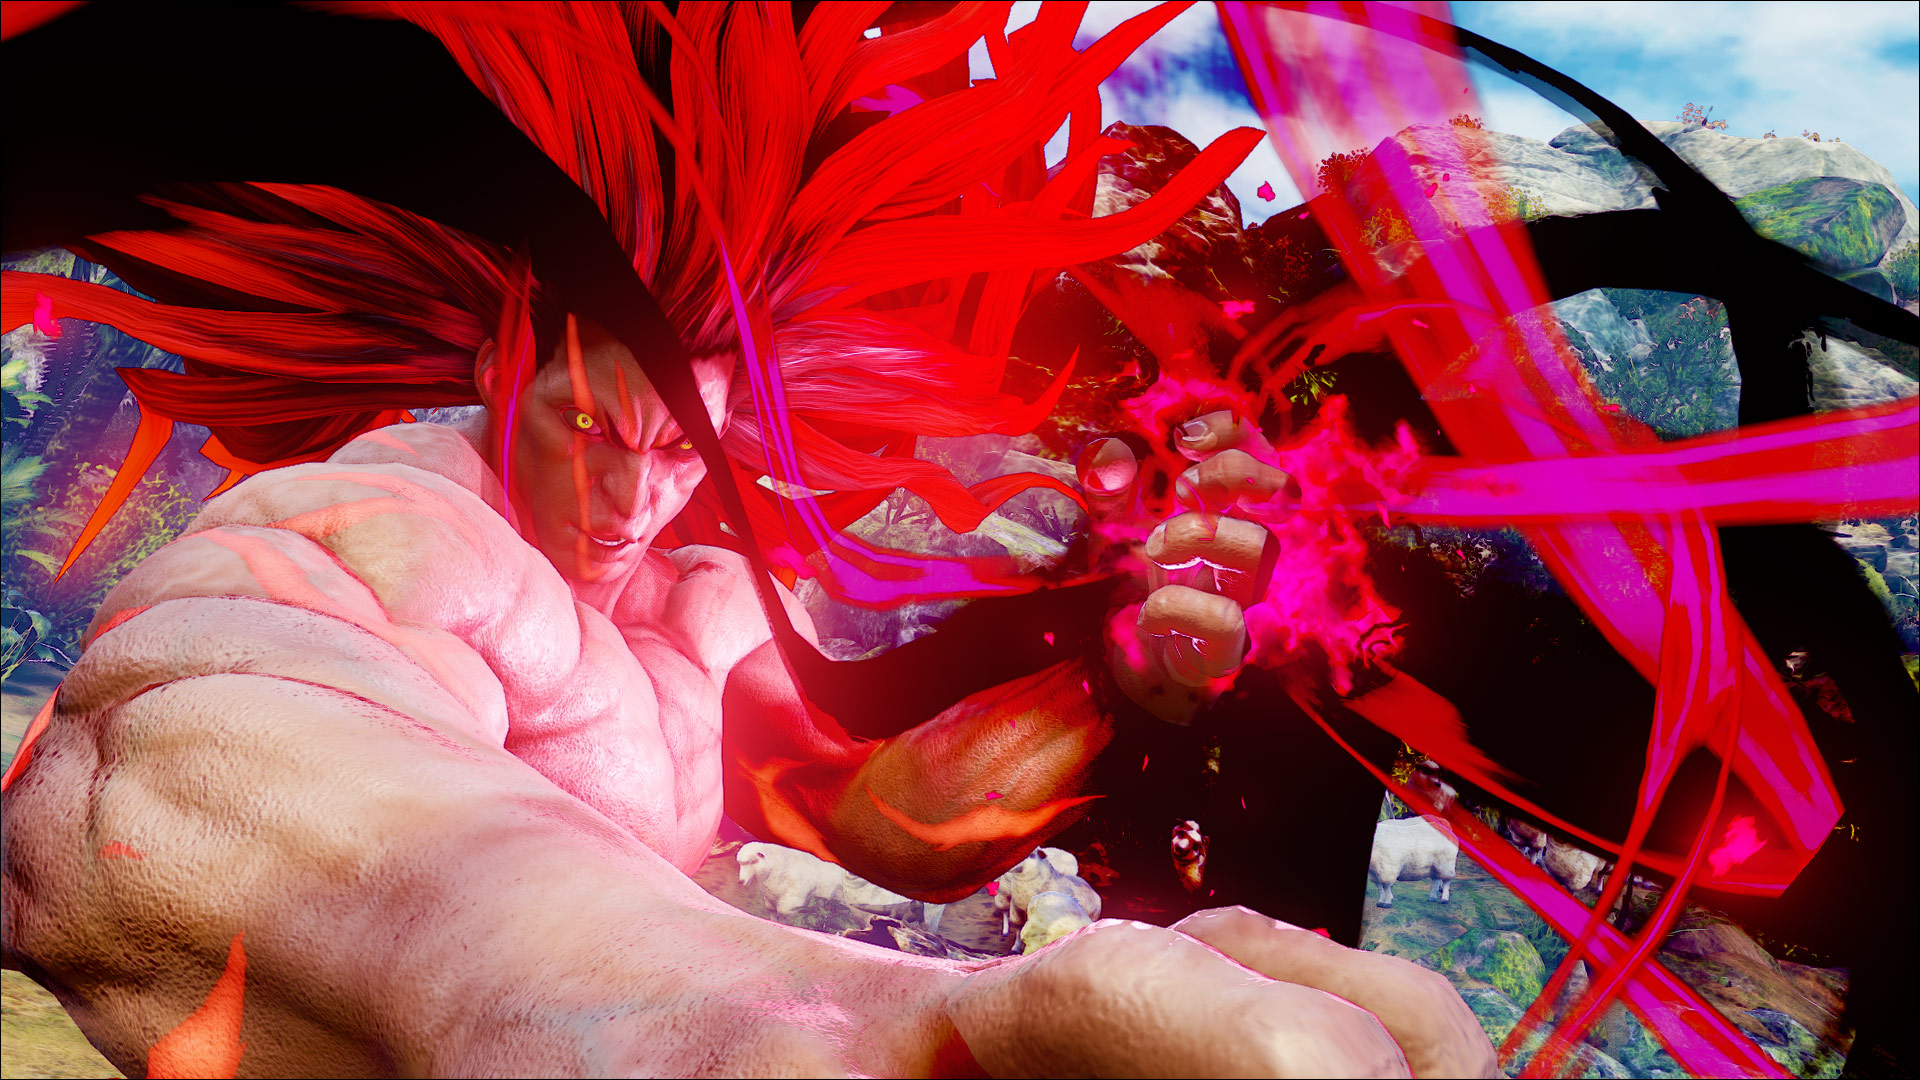 Official screenshots of Necalli in SF5 16 out of 17 image gallery